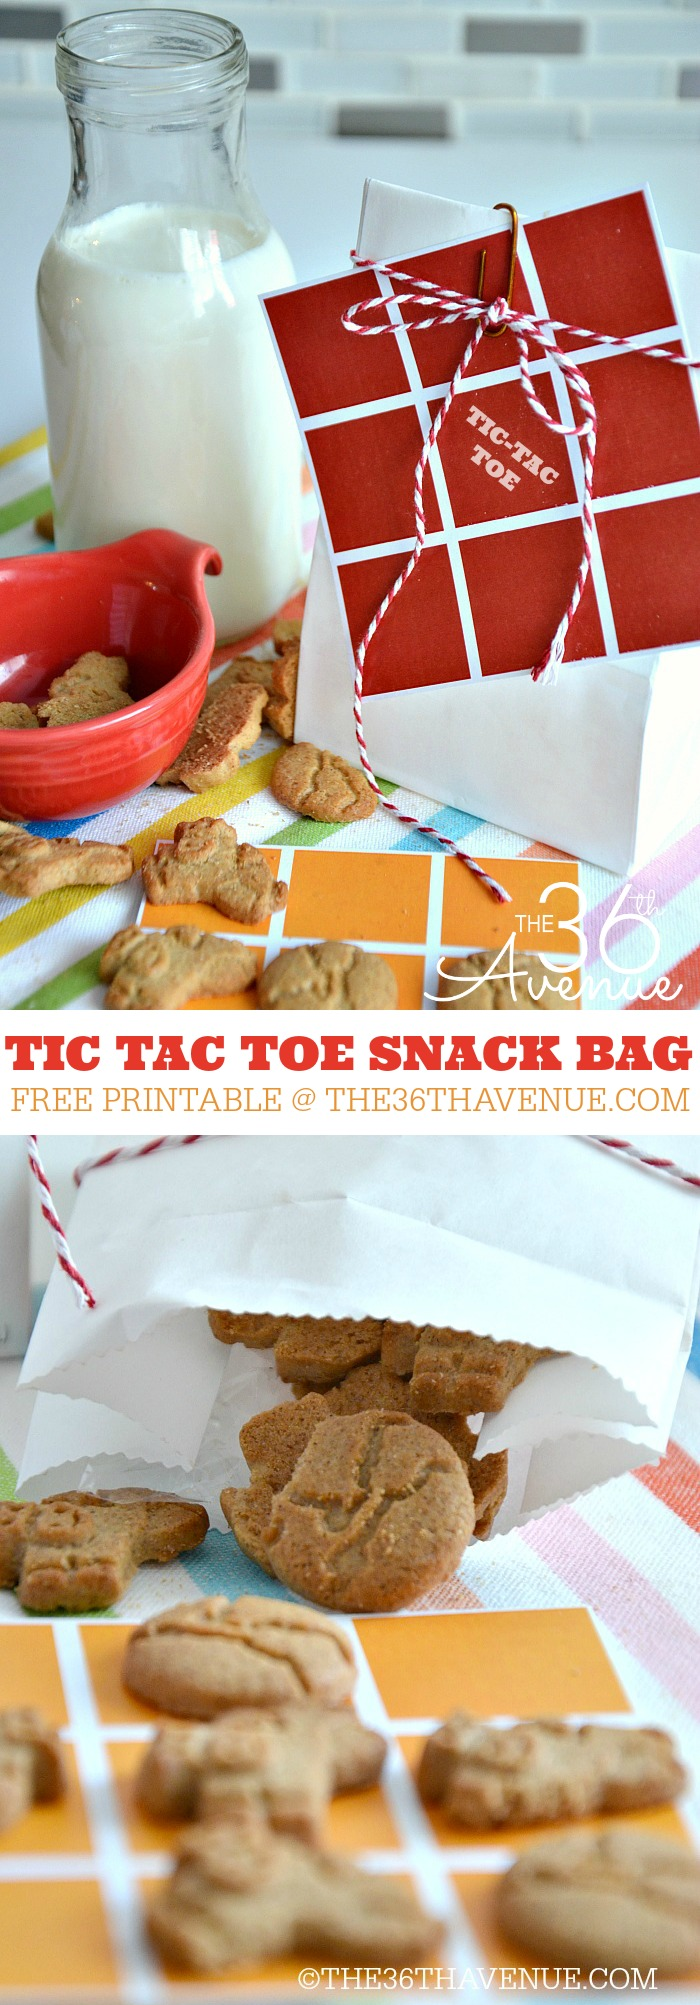 Easy Snack - Tic Tac Toe Bag Snacks at the36thavenue.com